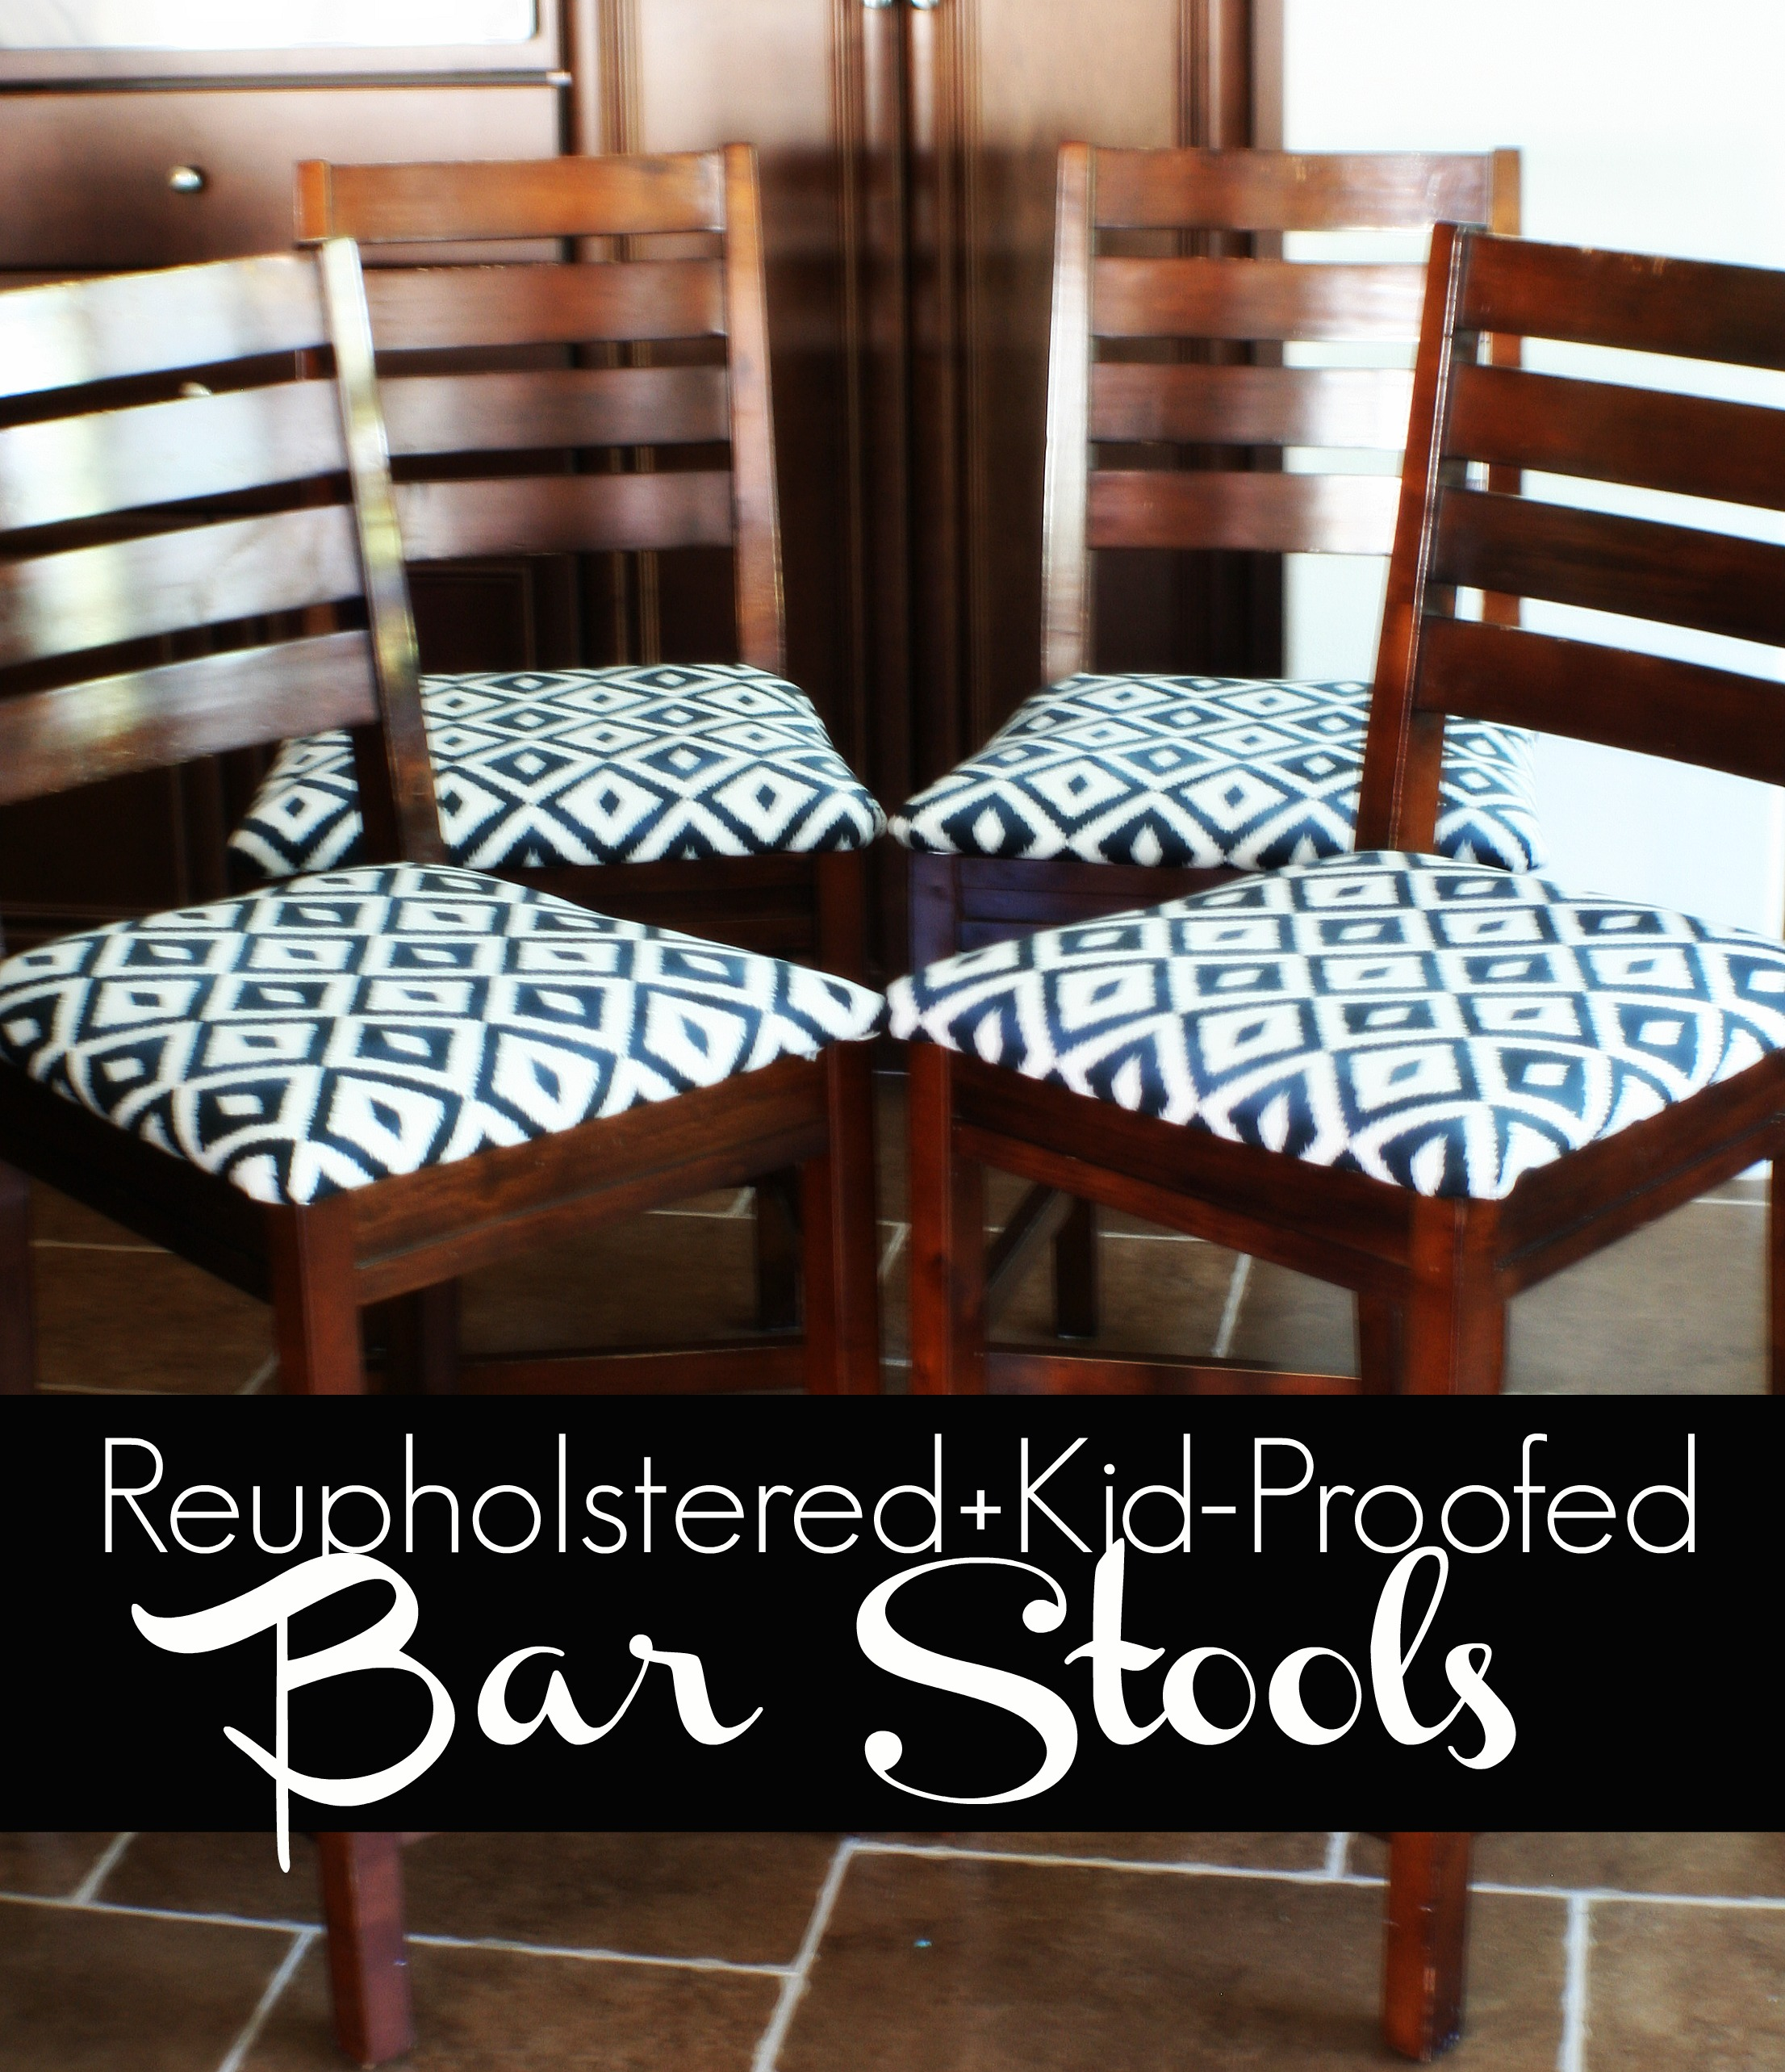 Reupholstering Kid Proofing Our Bar Stools